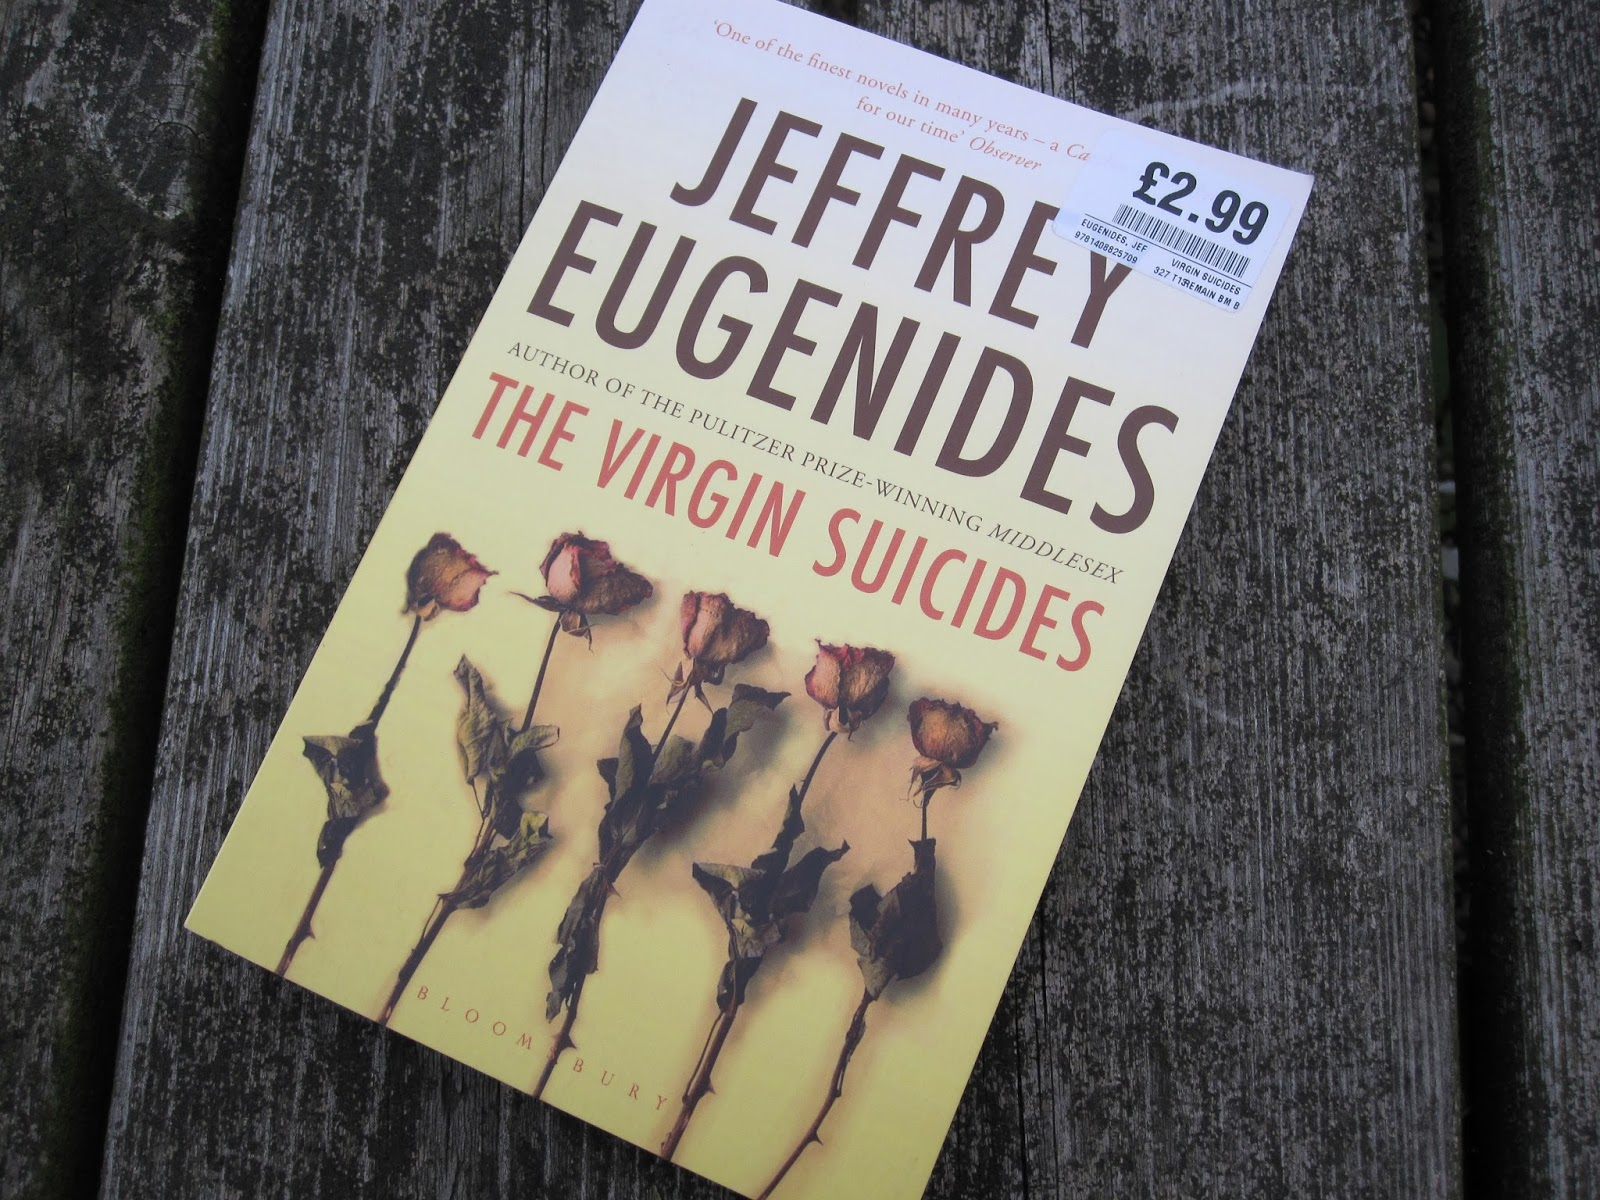 an analysis of the book the virgin suicides jeffrey eugenides The main love couple of this book was lux  a biography of jeffrey eugenides,  and provide critical analysis of the virgin suicides by jeffrey.